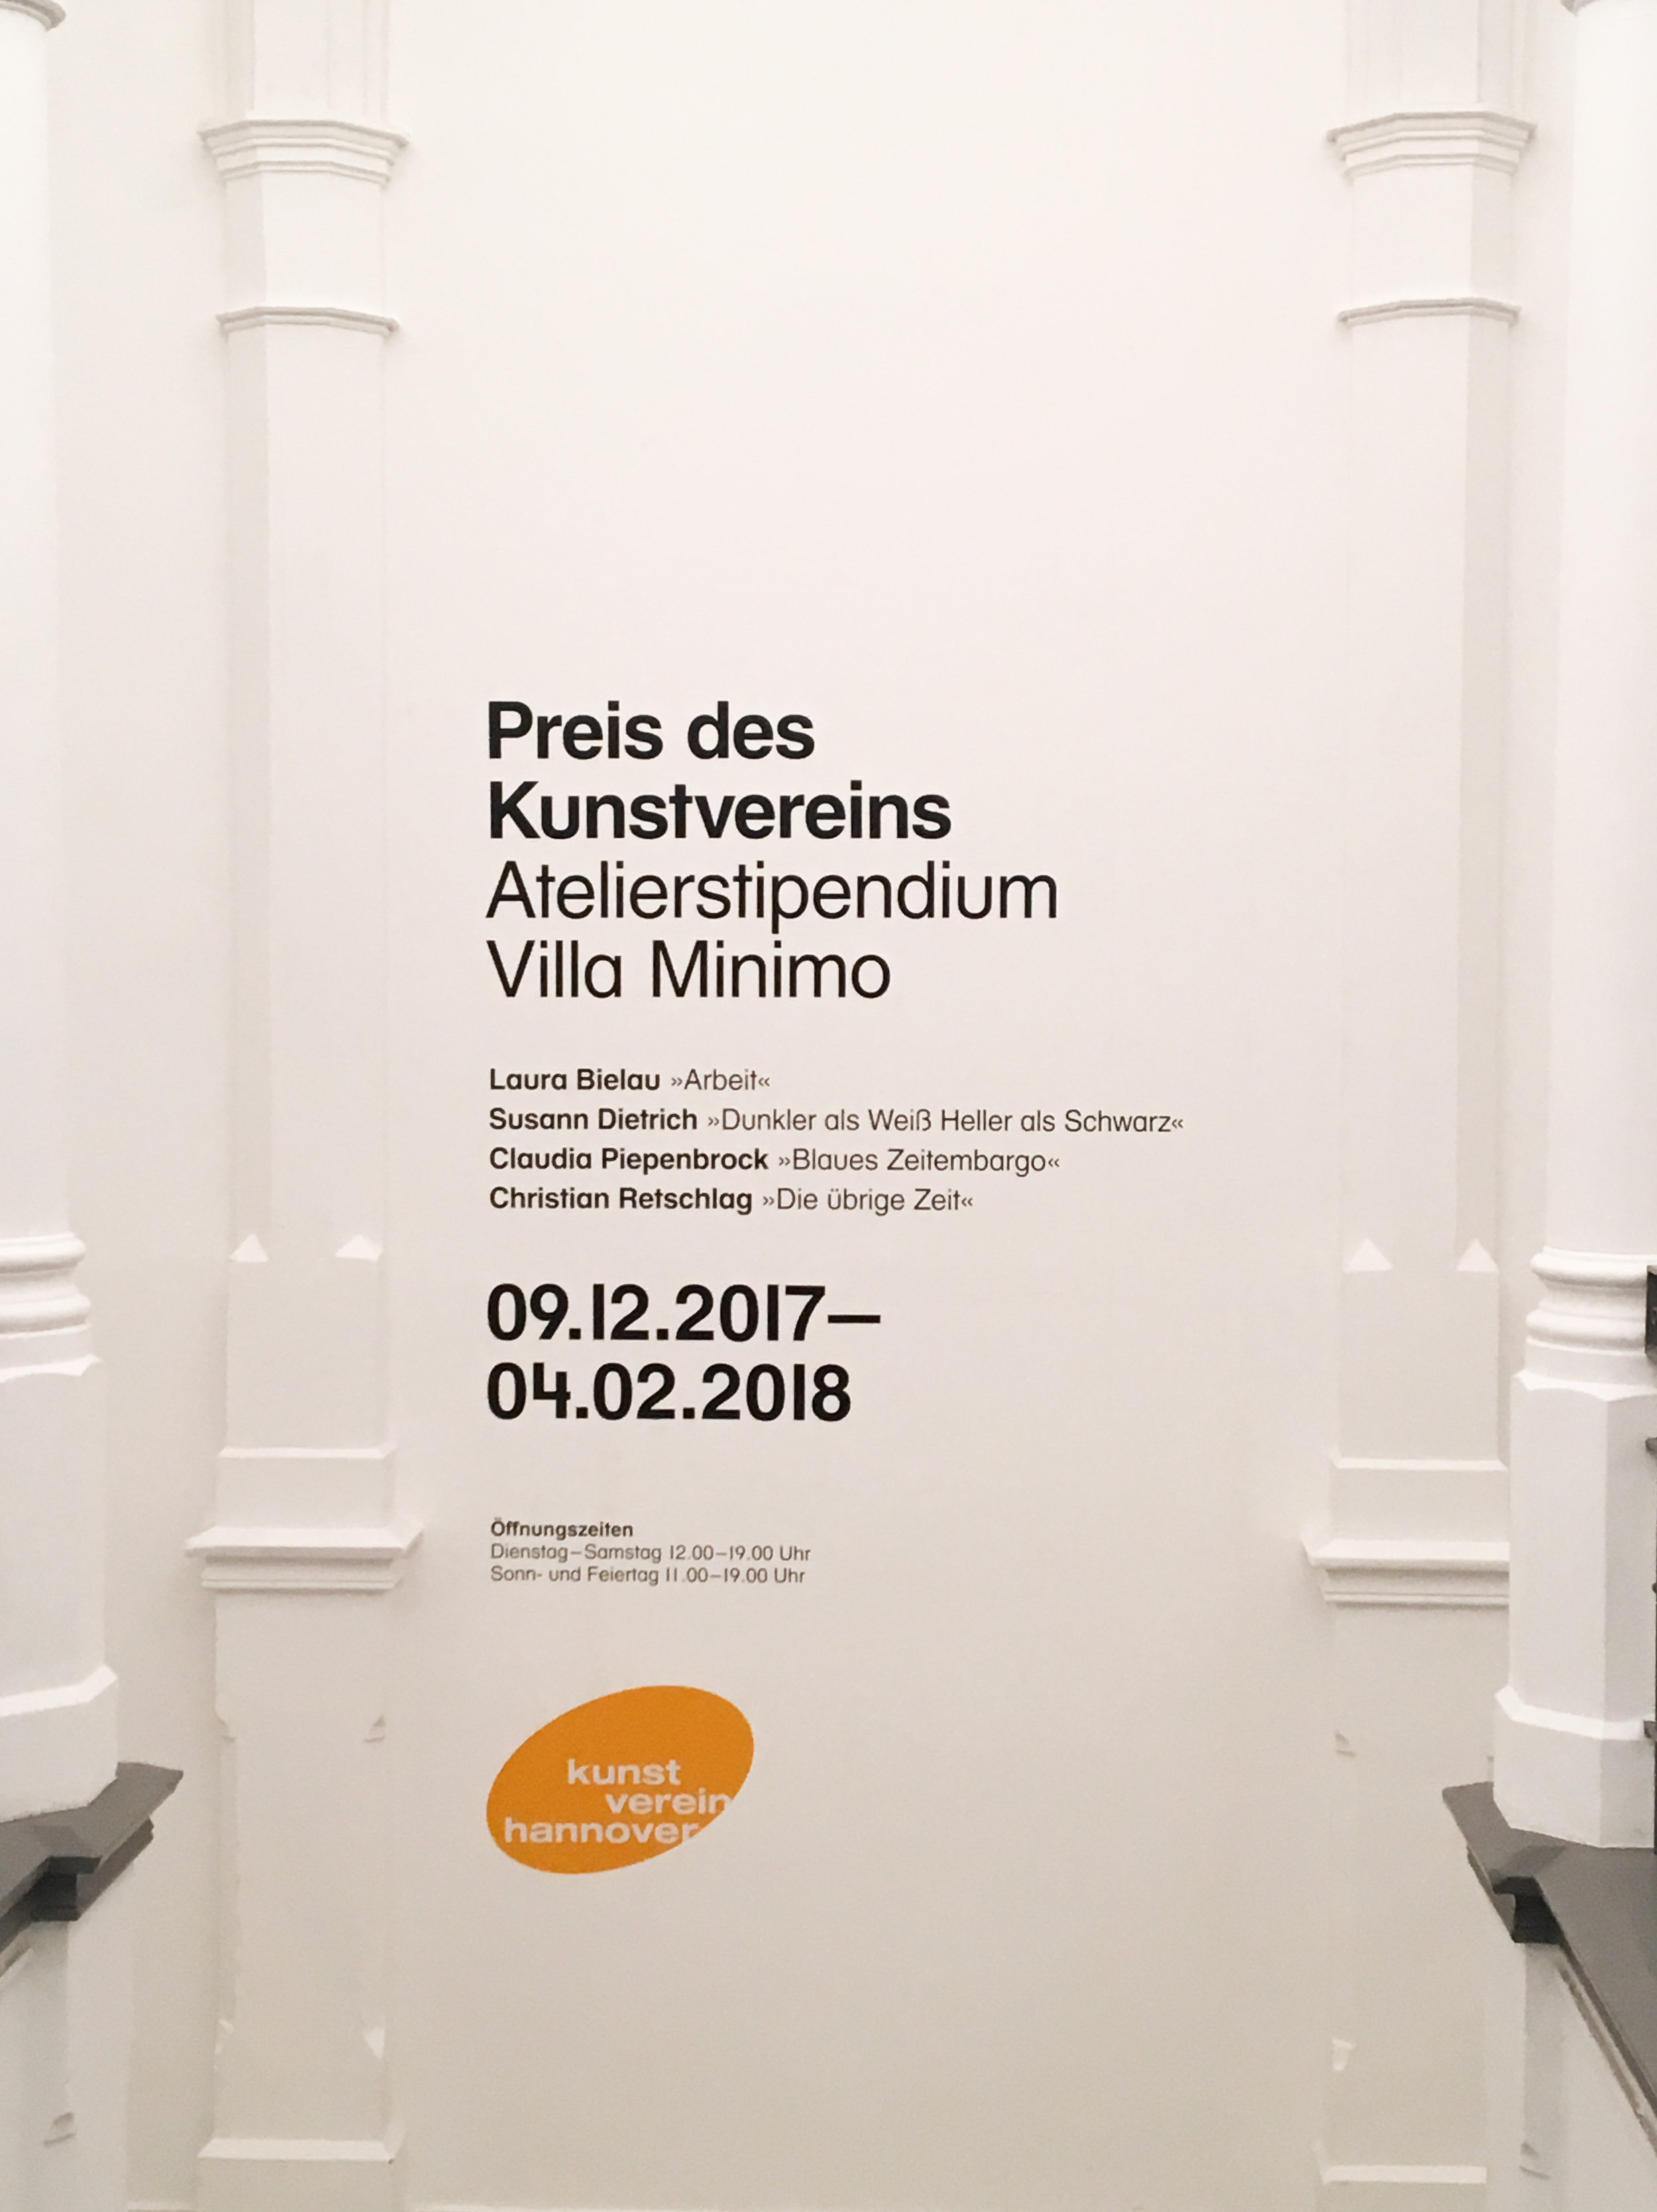 The list of exhibitions in the hall